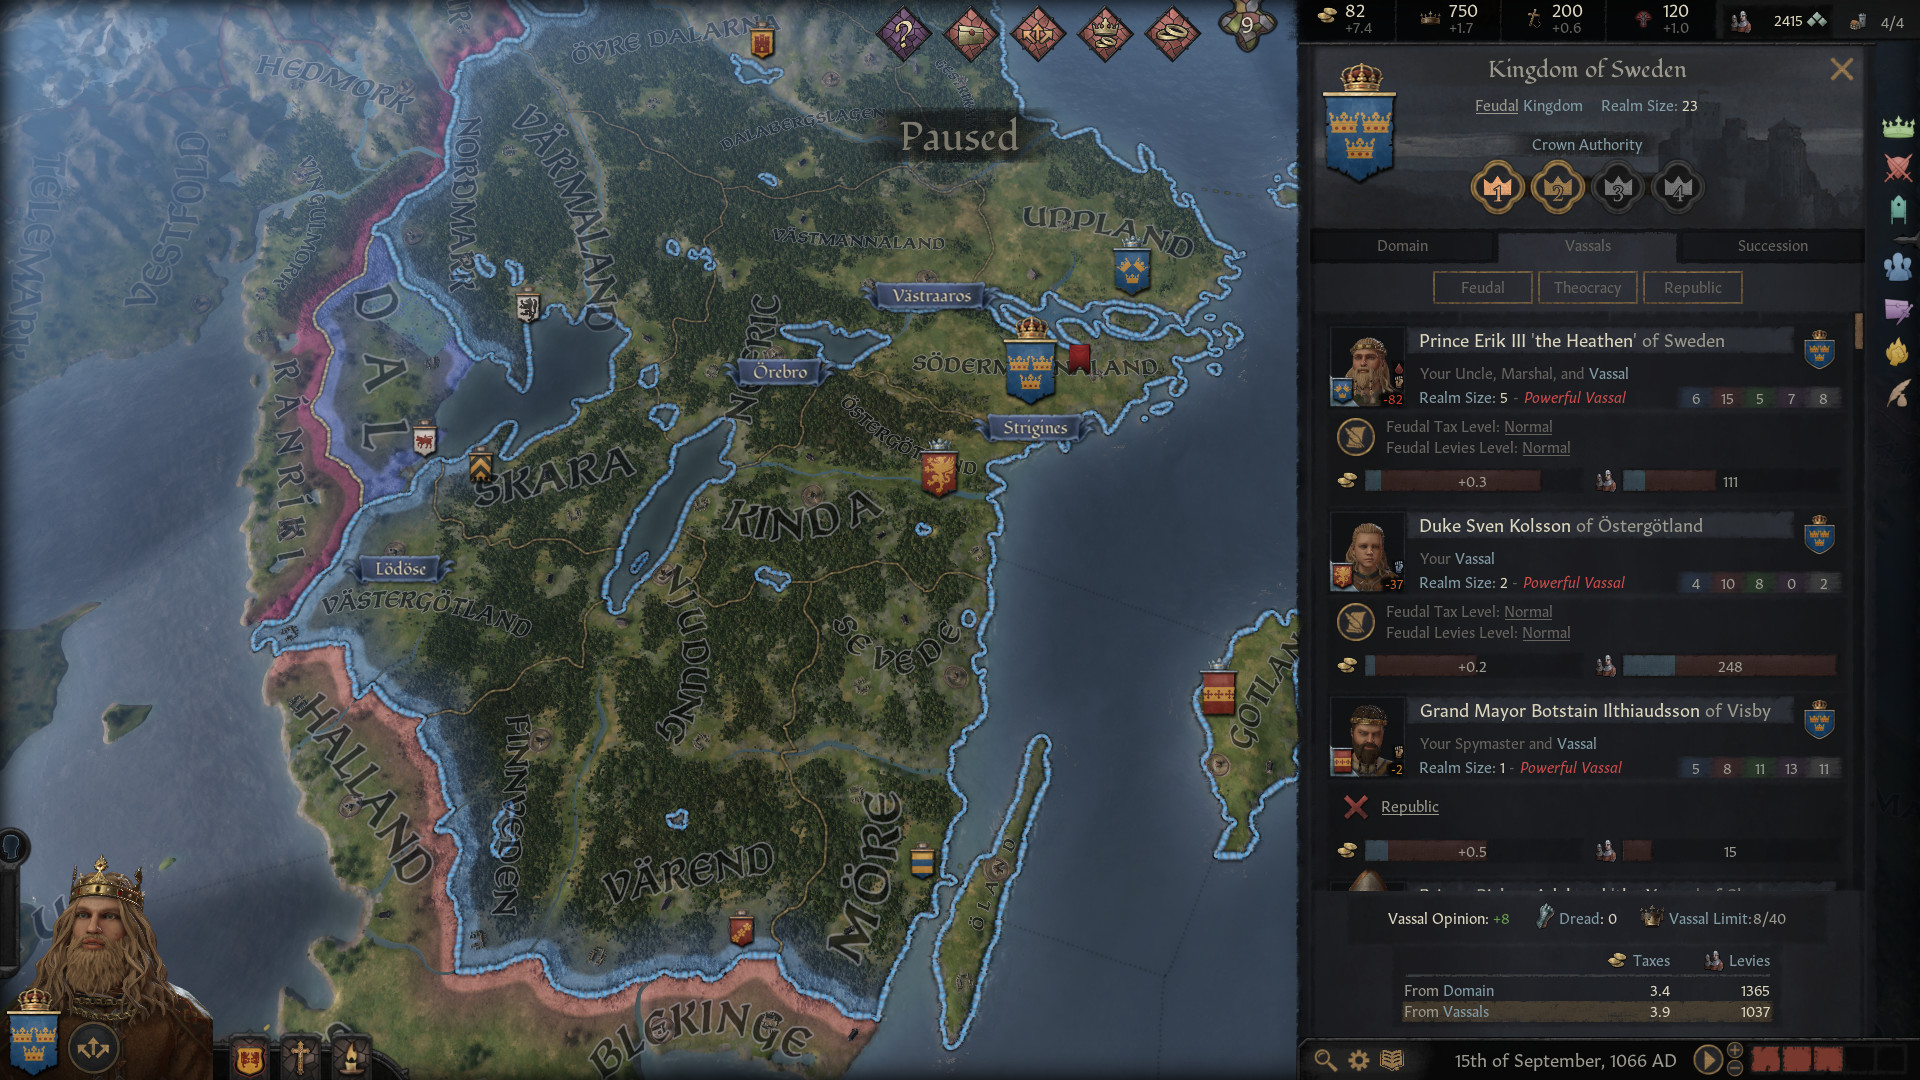 Screenshot for the game Crusader Kings III [v. 1.2.2] (2020) download torrent RePack by R.G. Mechanics